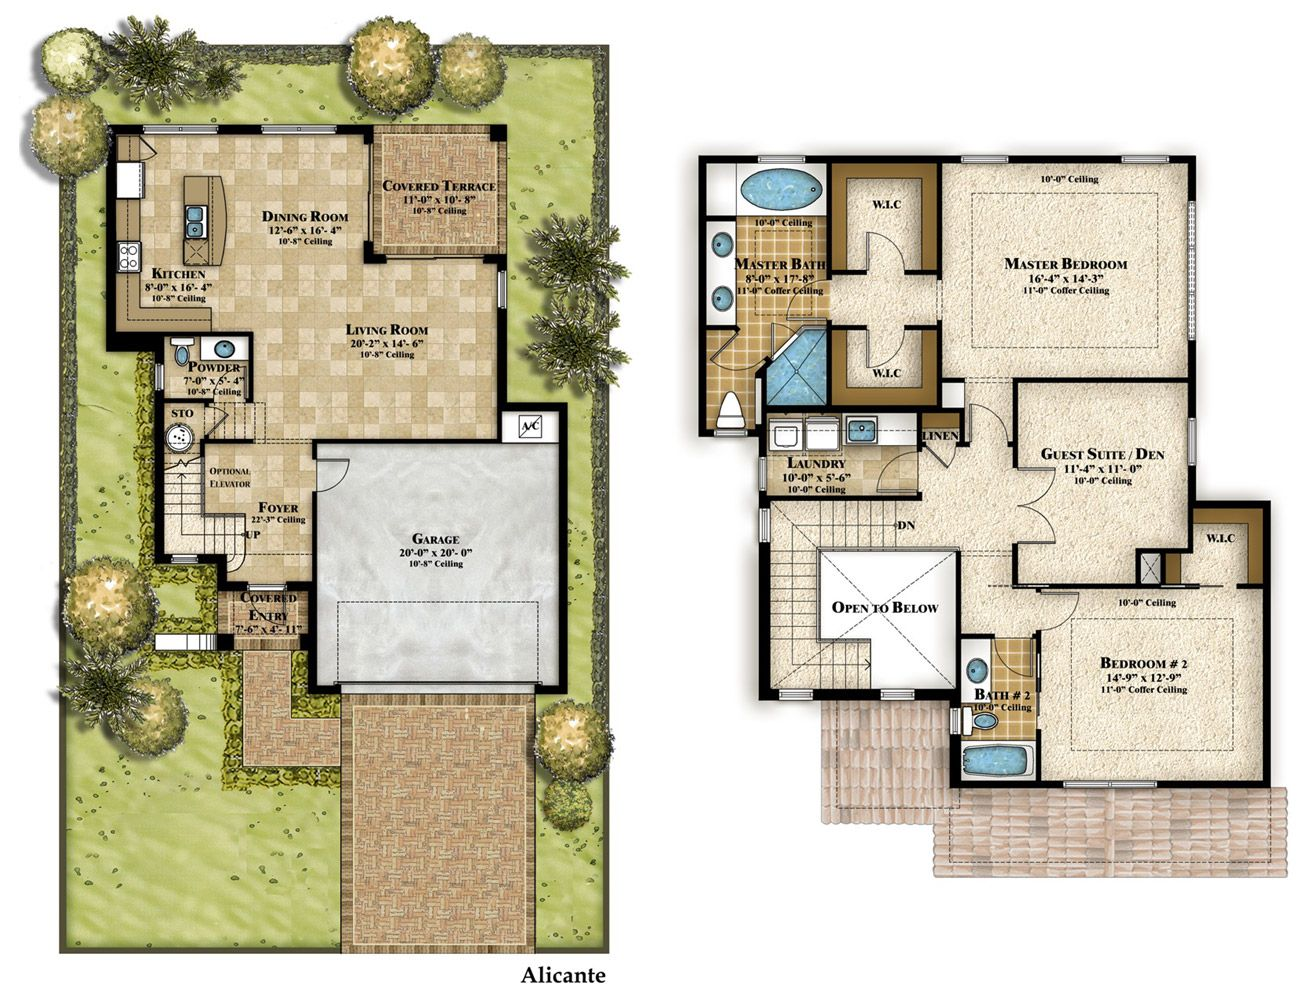 cool 2 story house floor plans   Homes   Pinterest   Story house     cool 2 story house floor plans